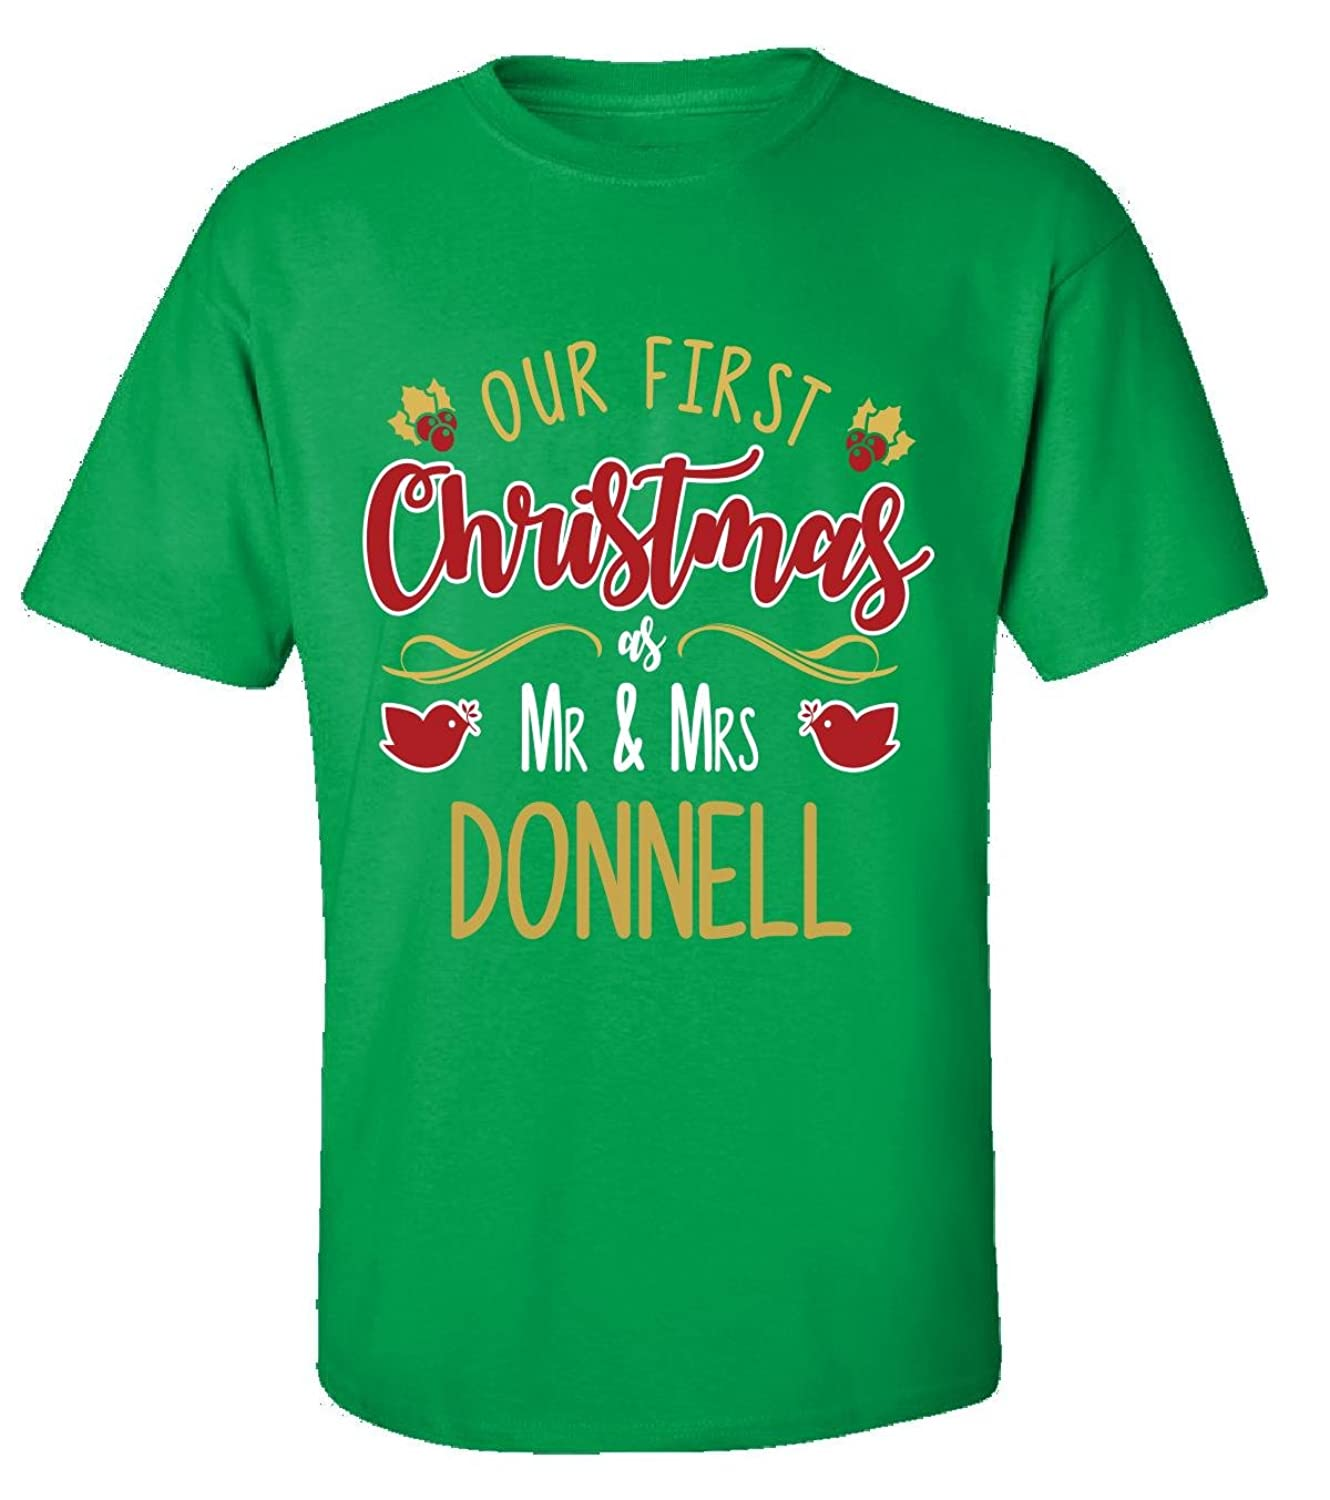 Our First Christmas As Mr - Mrs Donnell - Adult Shirt